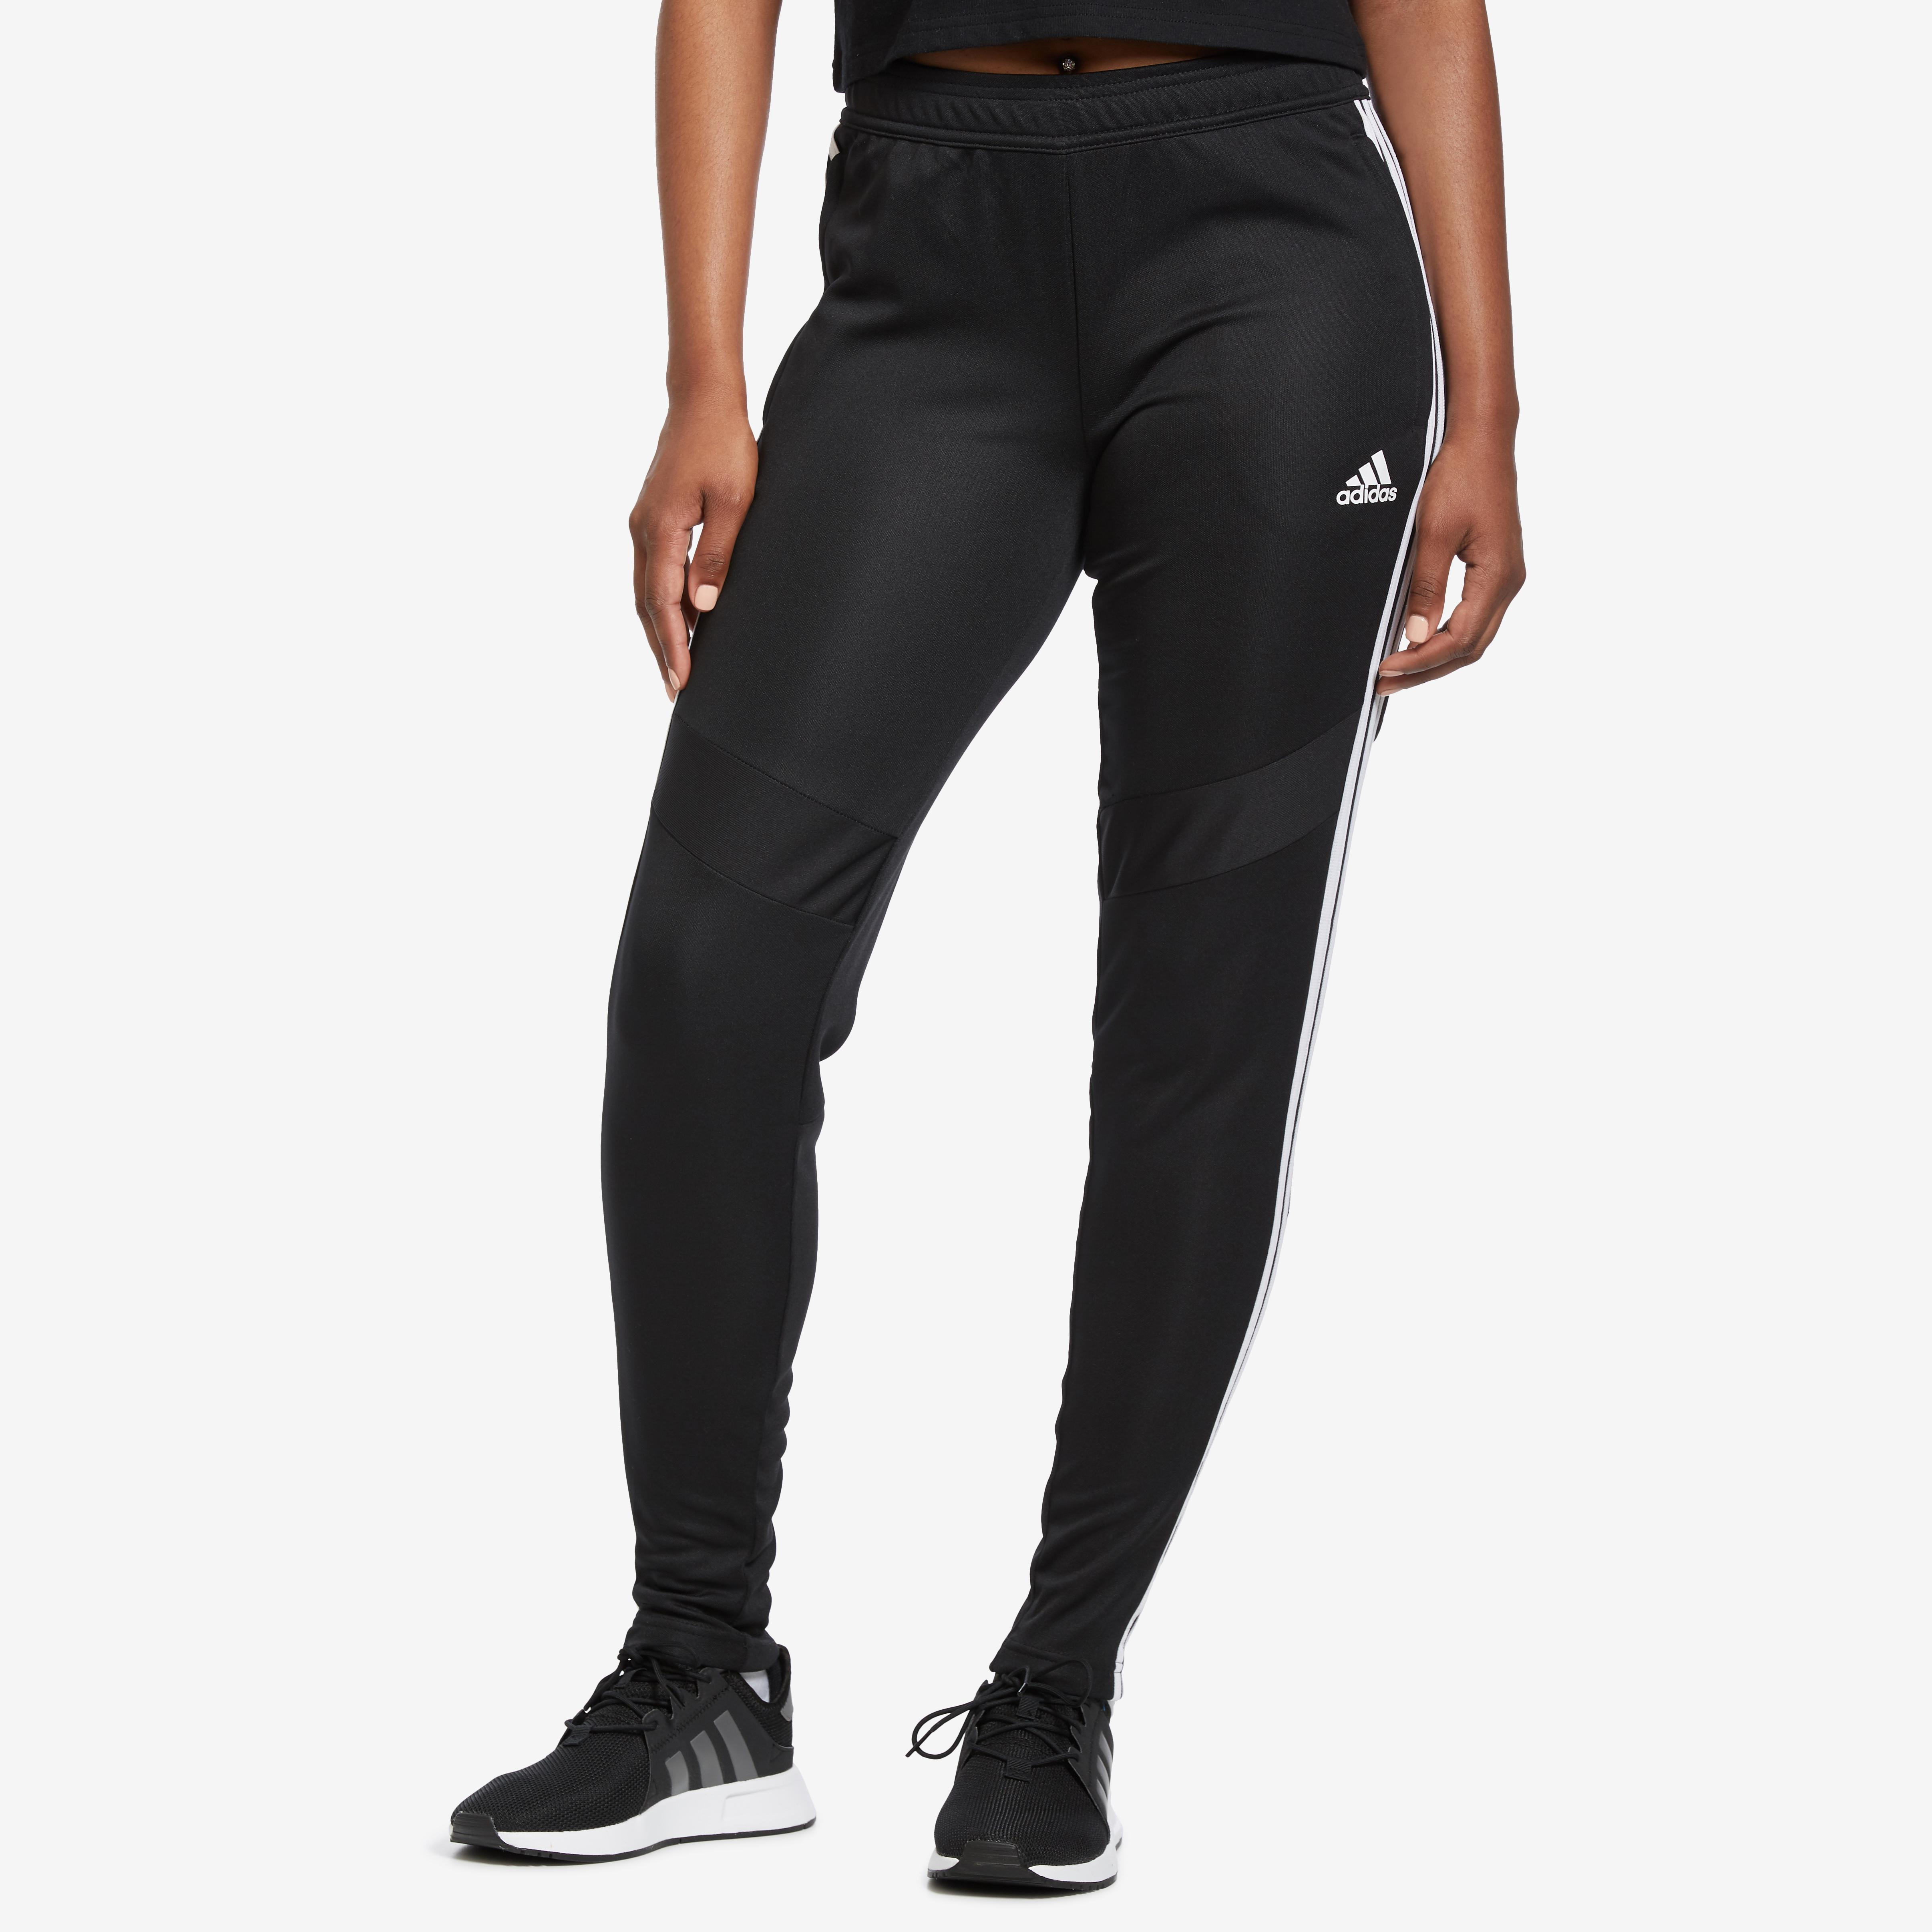 Women's Tiro 19 Pants